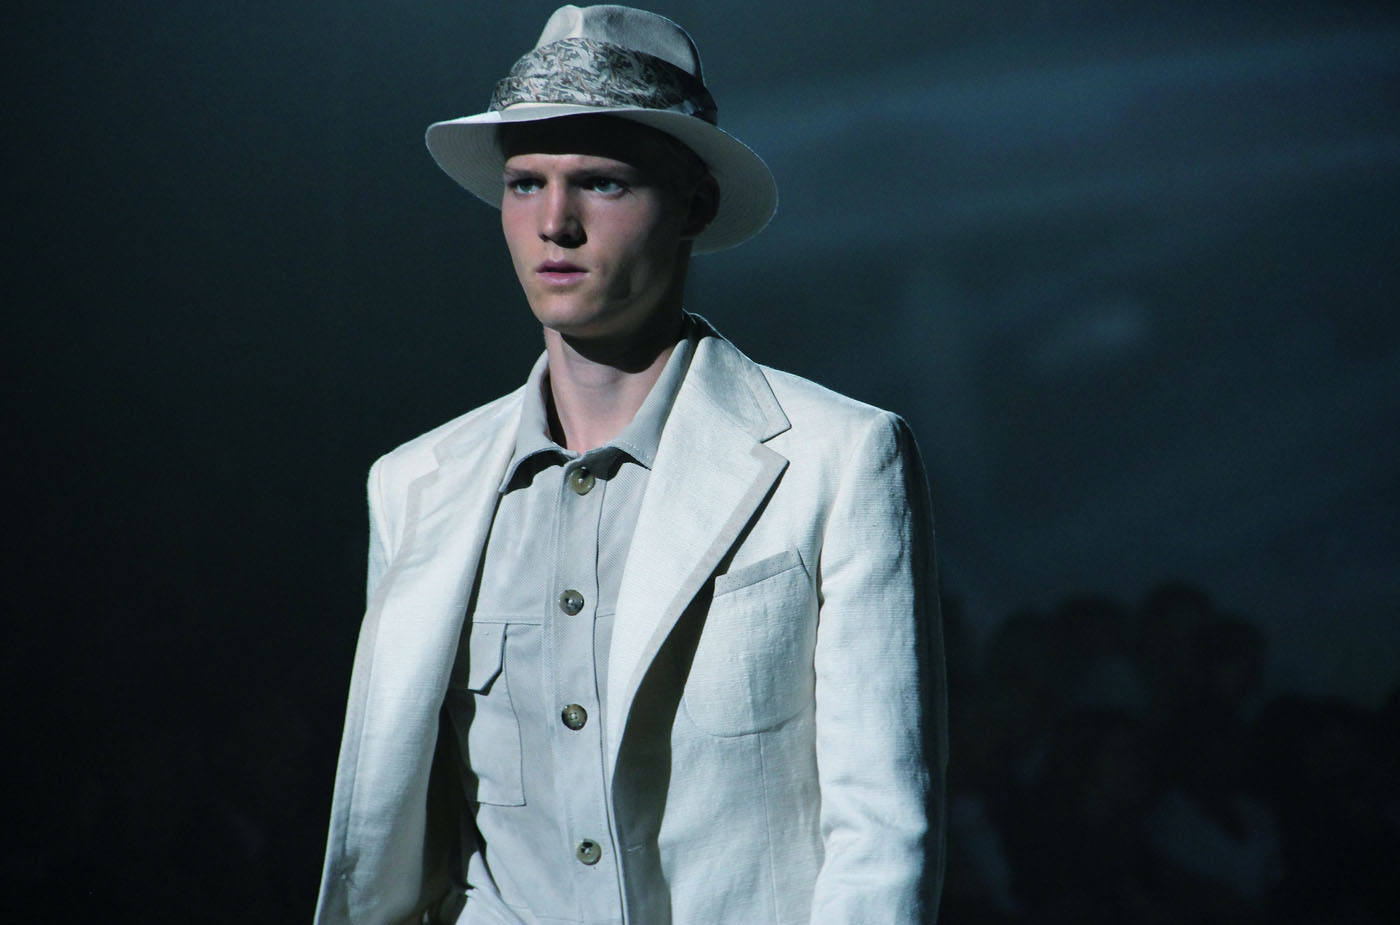 corneliani-milano-fashion-week-2012-spring-summer-fashion-show-catwalk